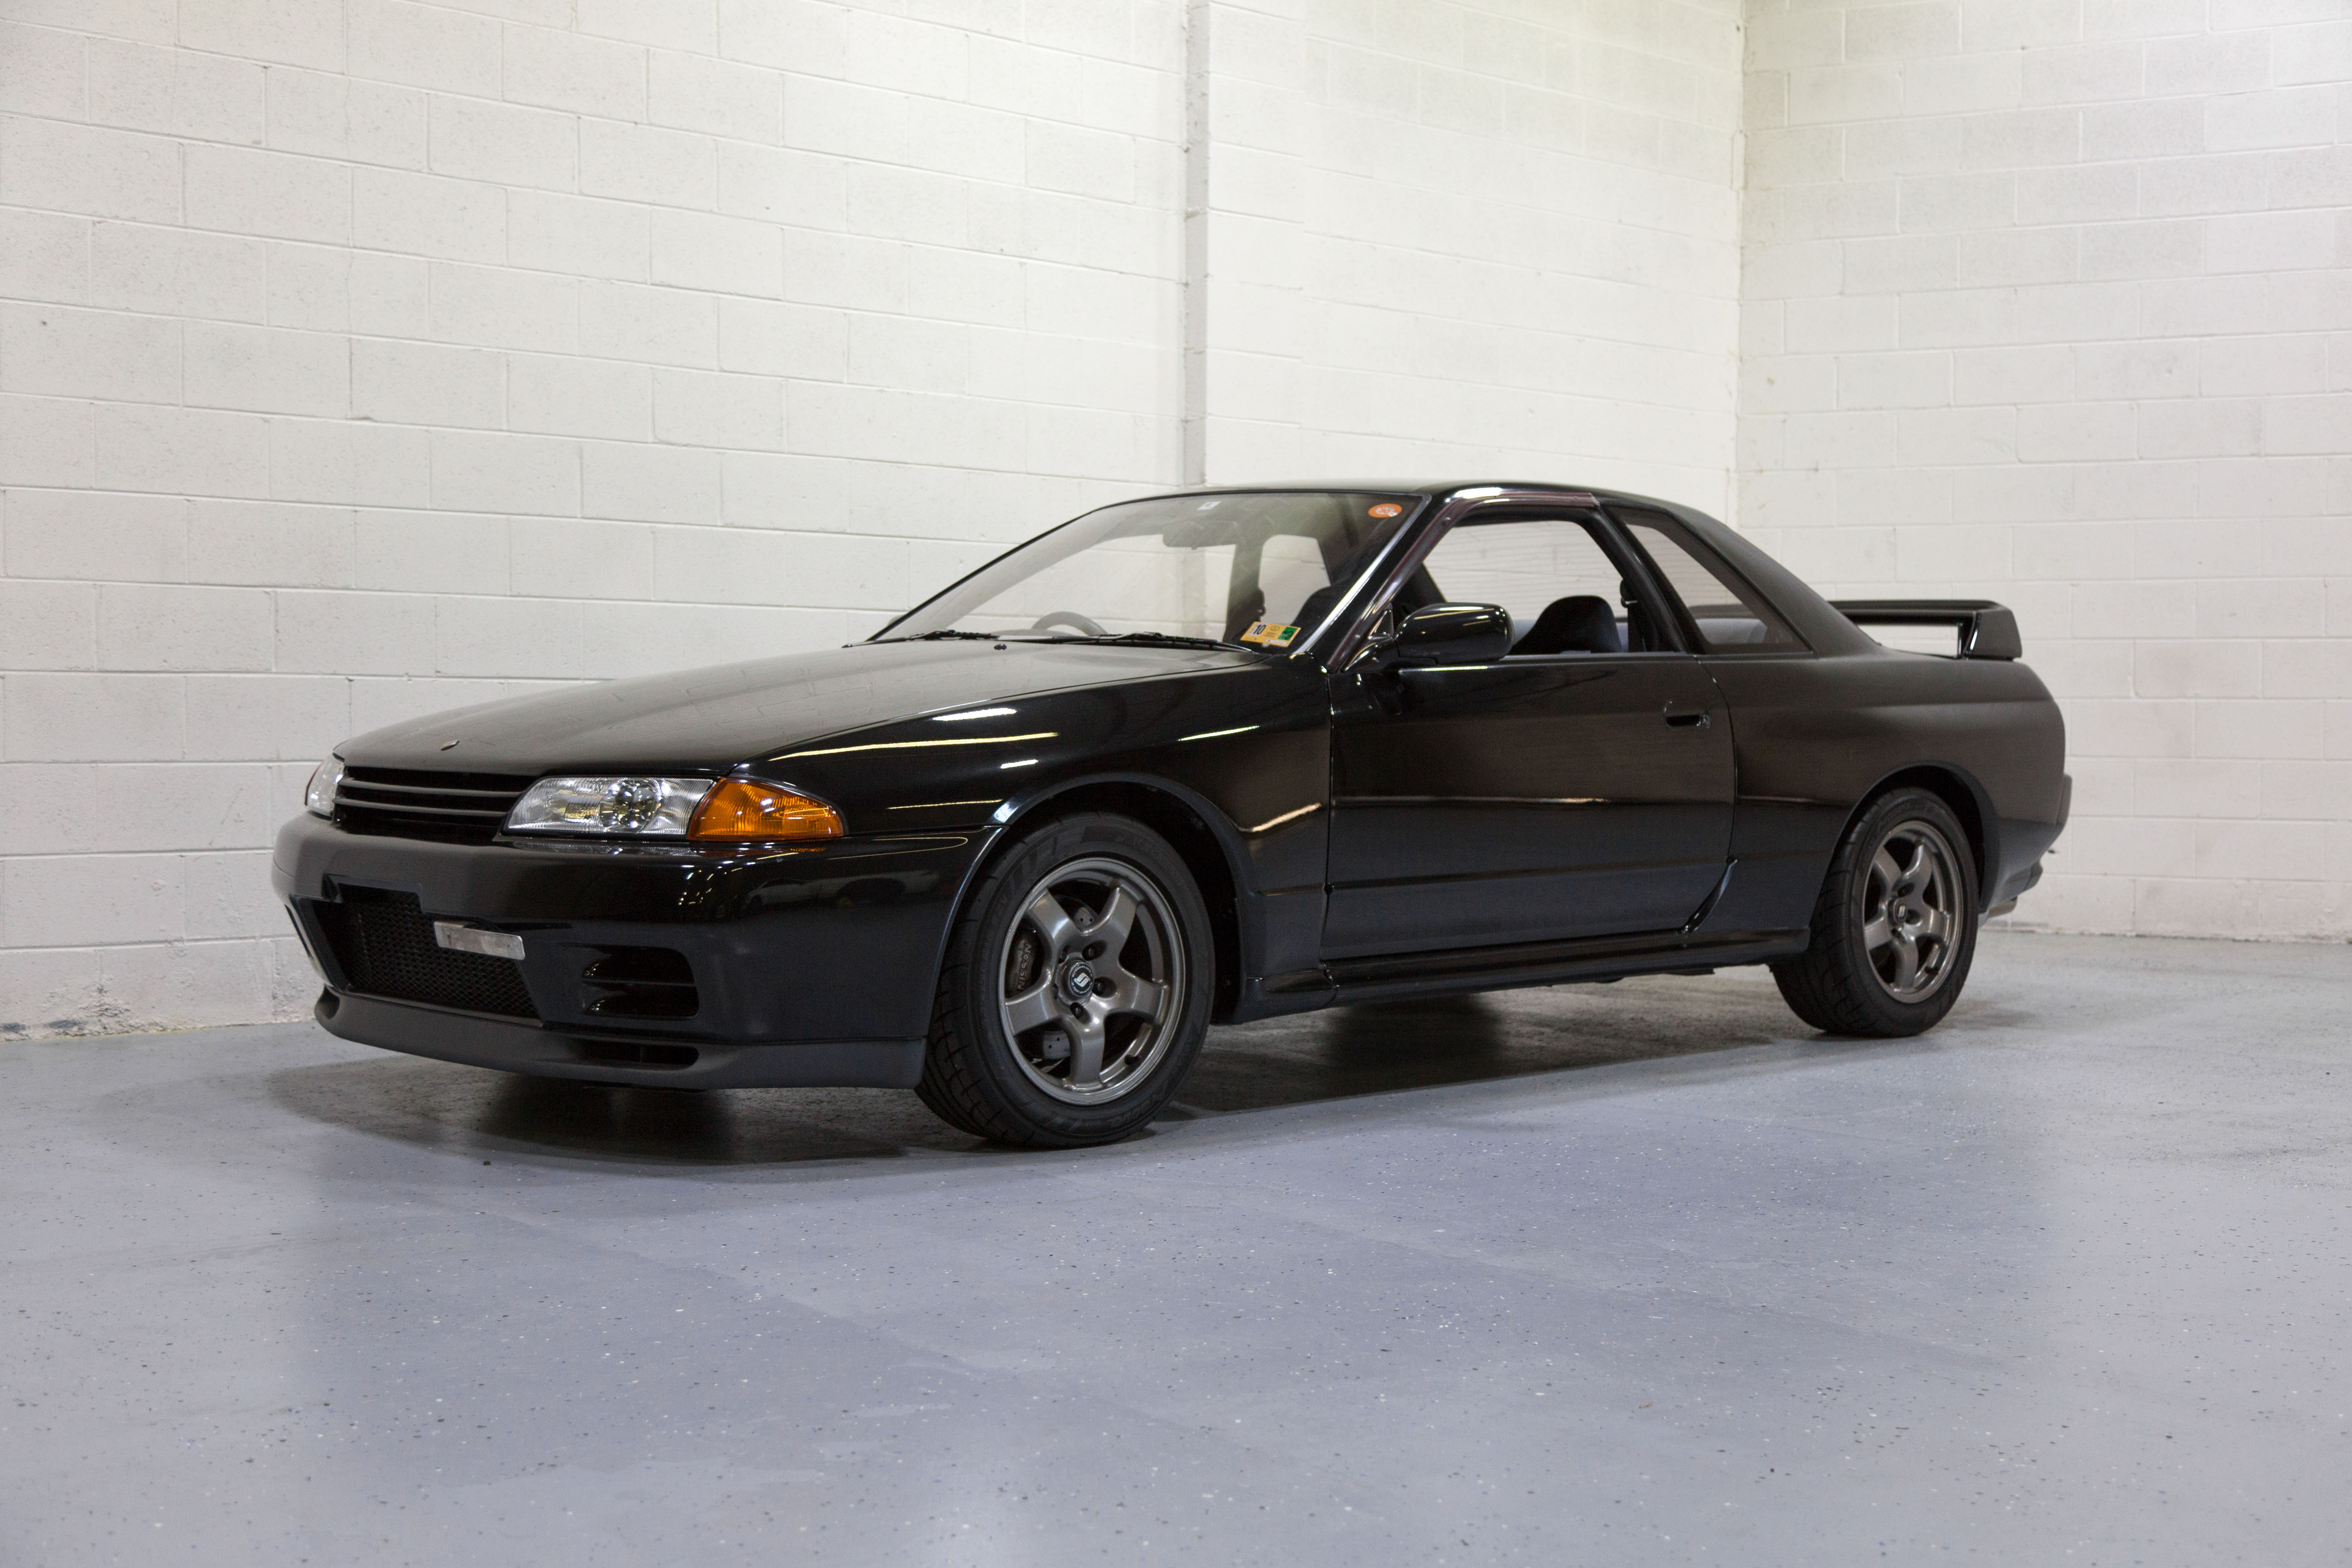 Nissan Skyline Gtr For Sale >> 1989 Nissan Skyline Gtr R32 Lightly Modified And In Excellent Condition